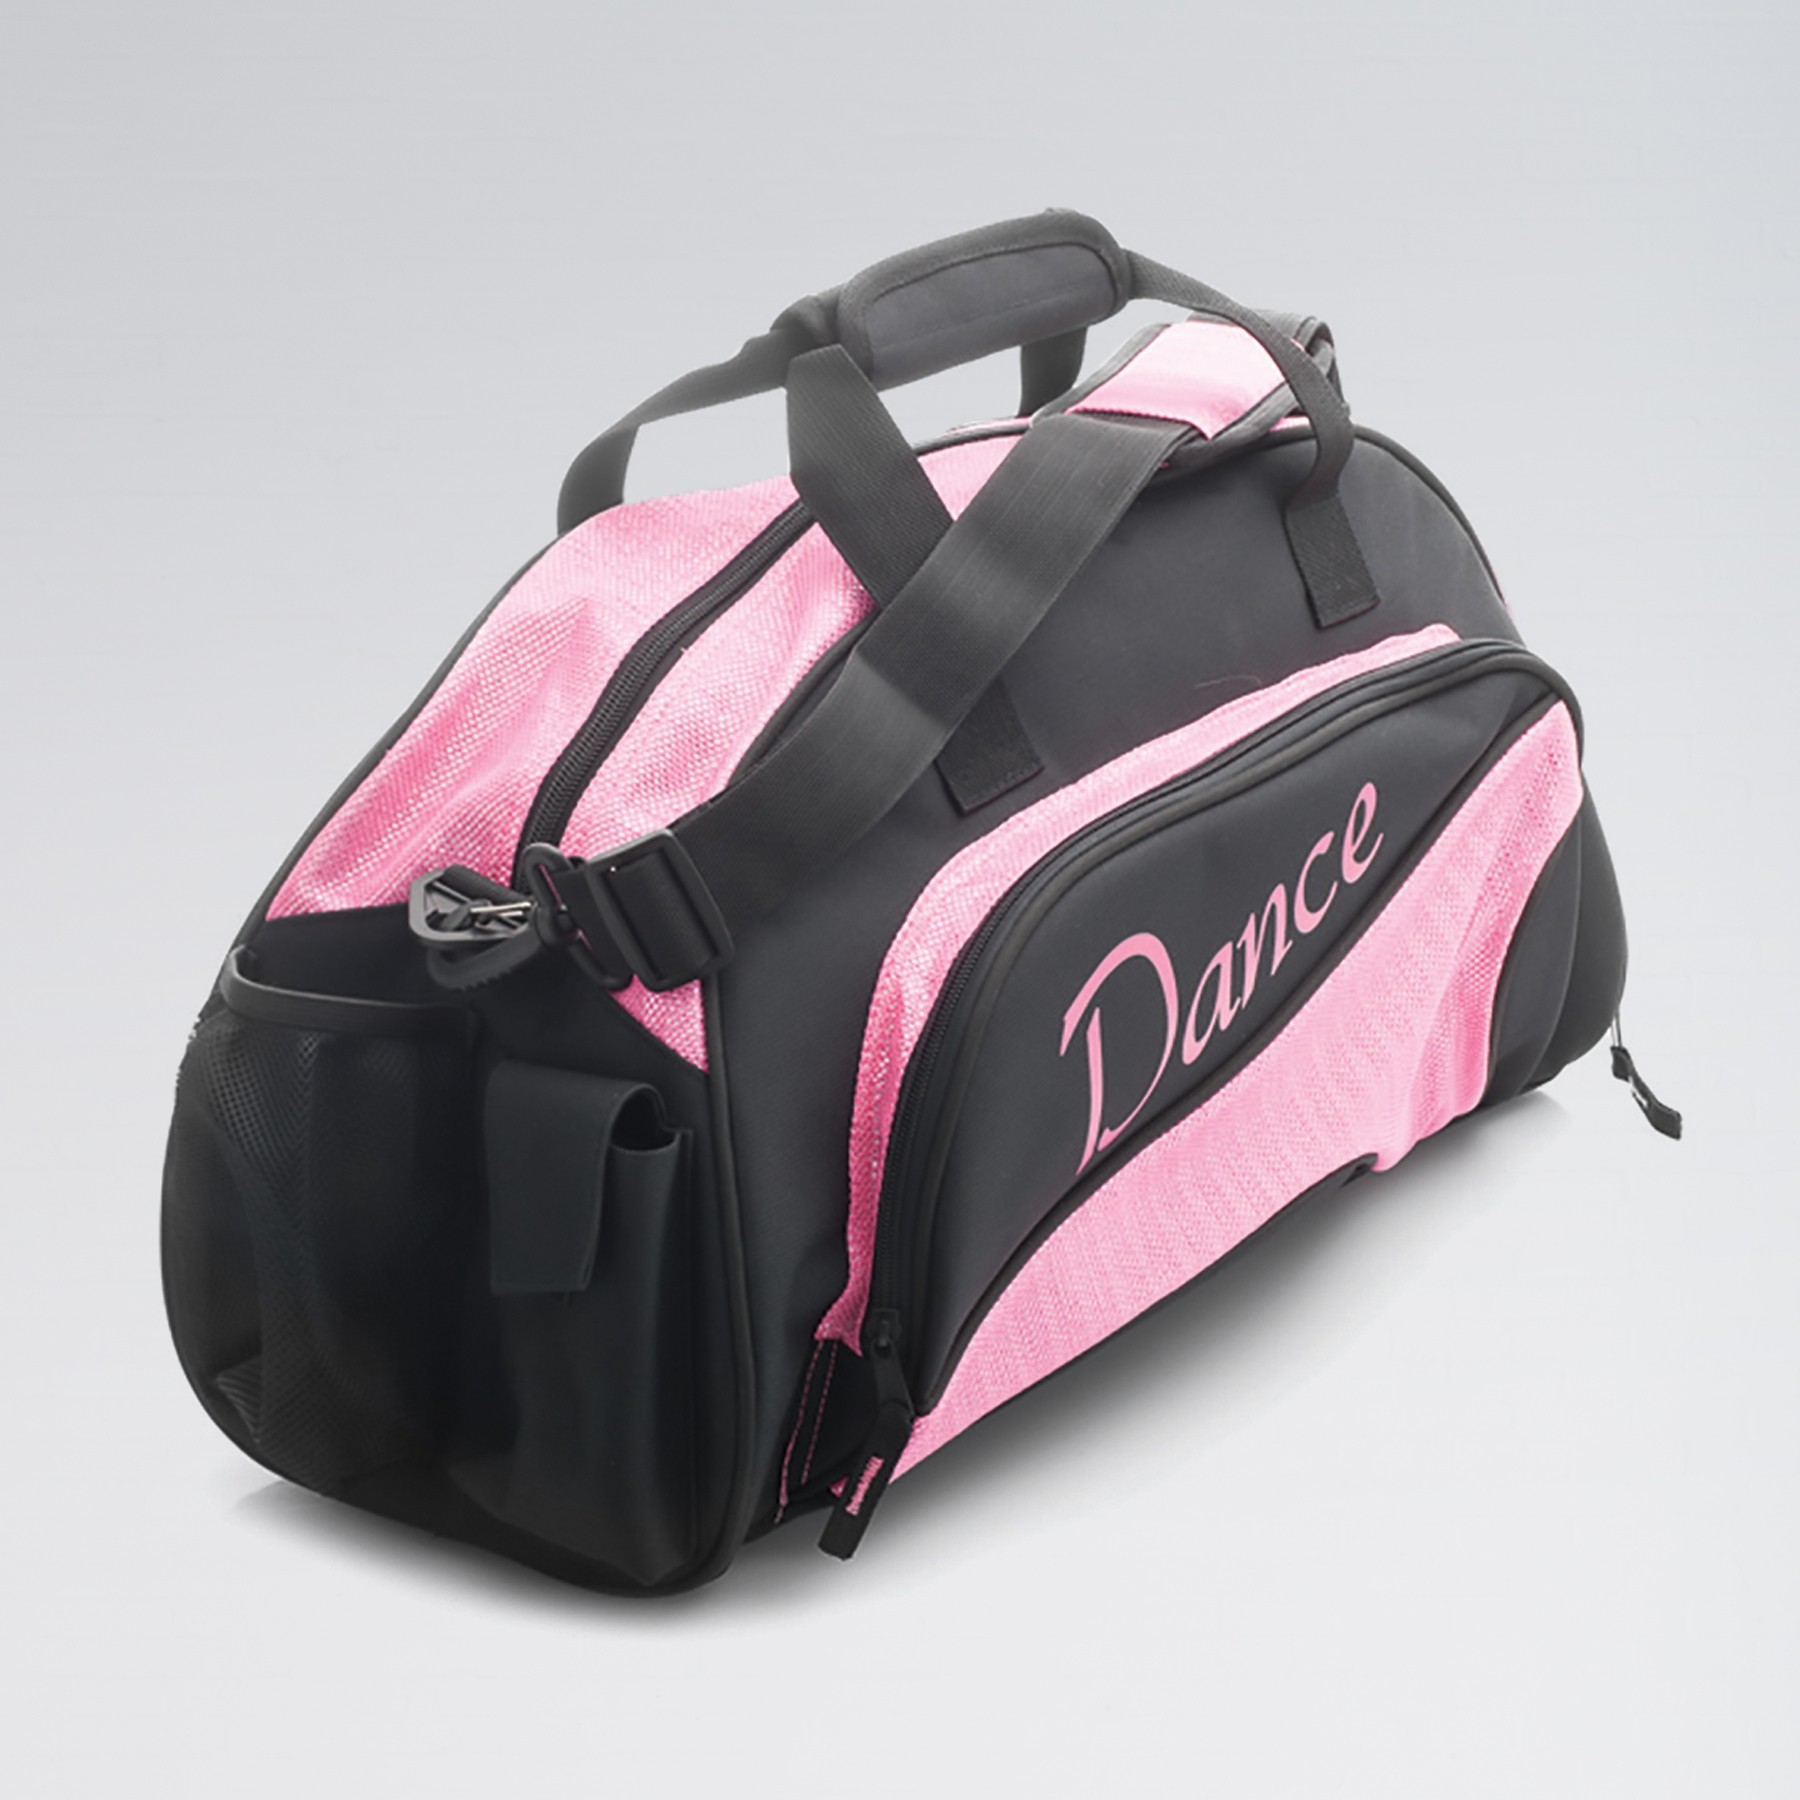 Katz Medium Sports Bag Pink/Black